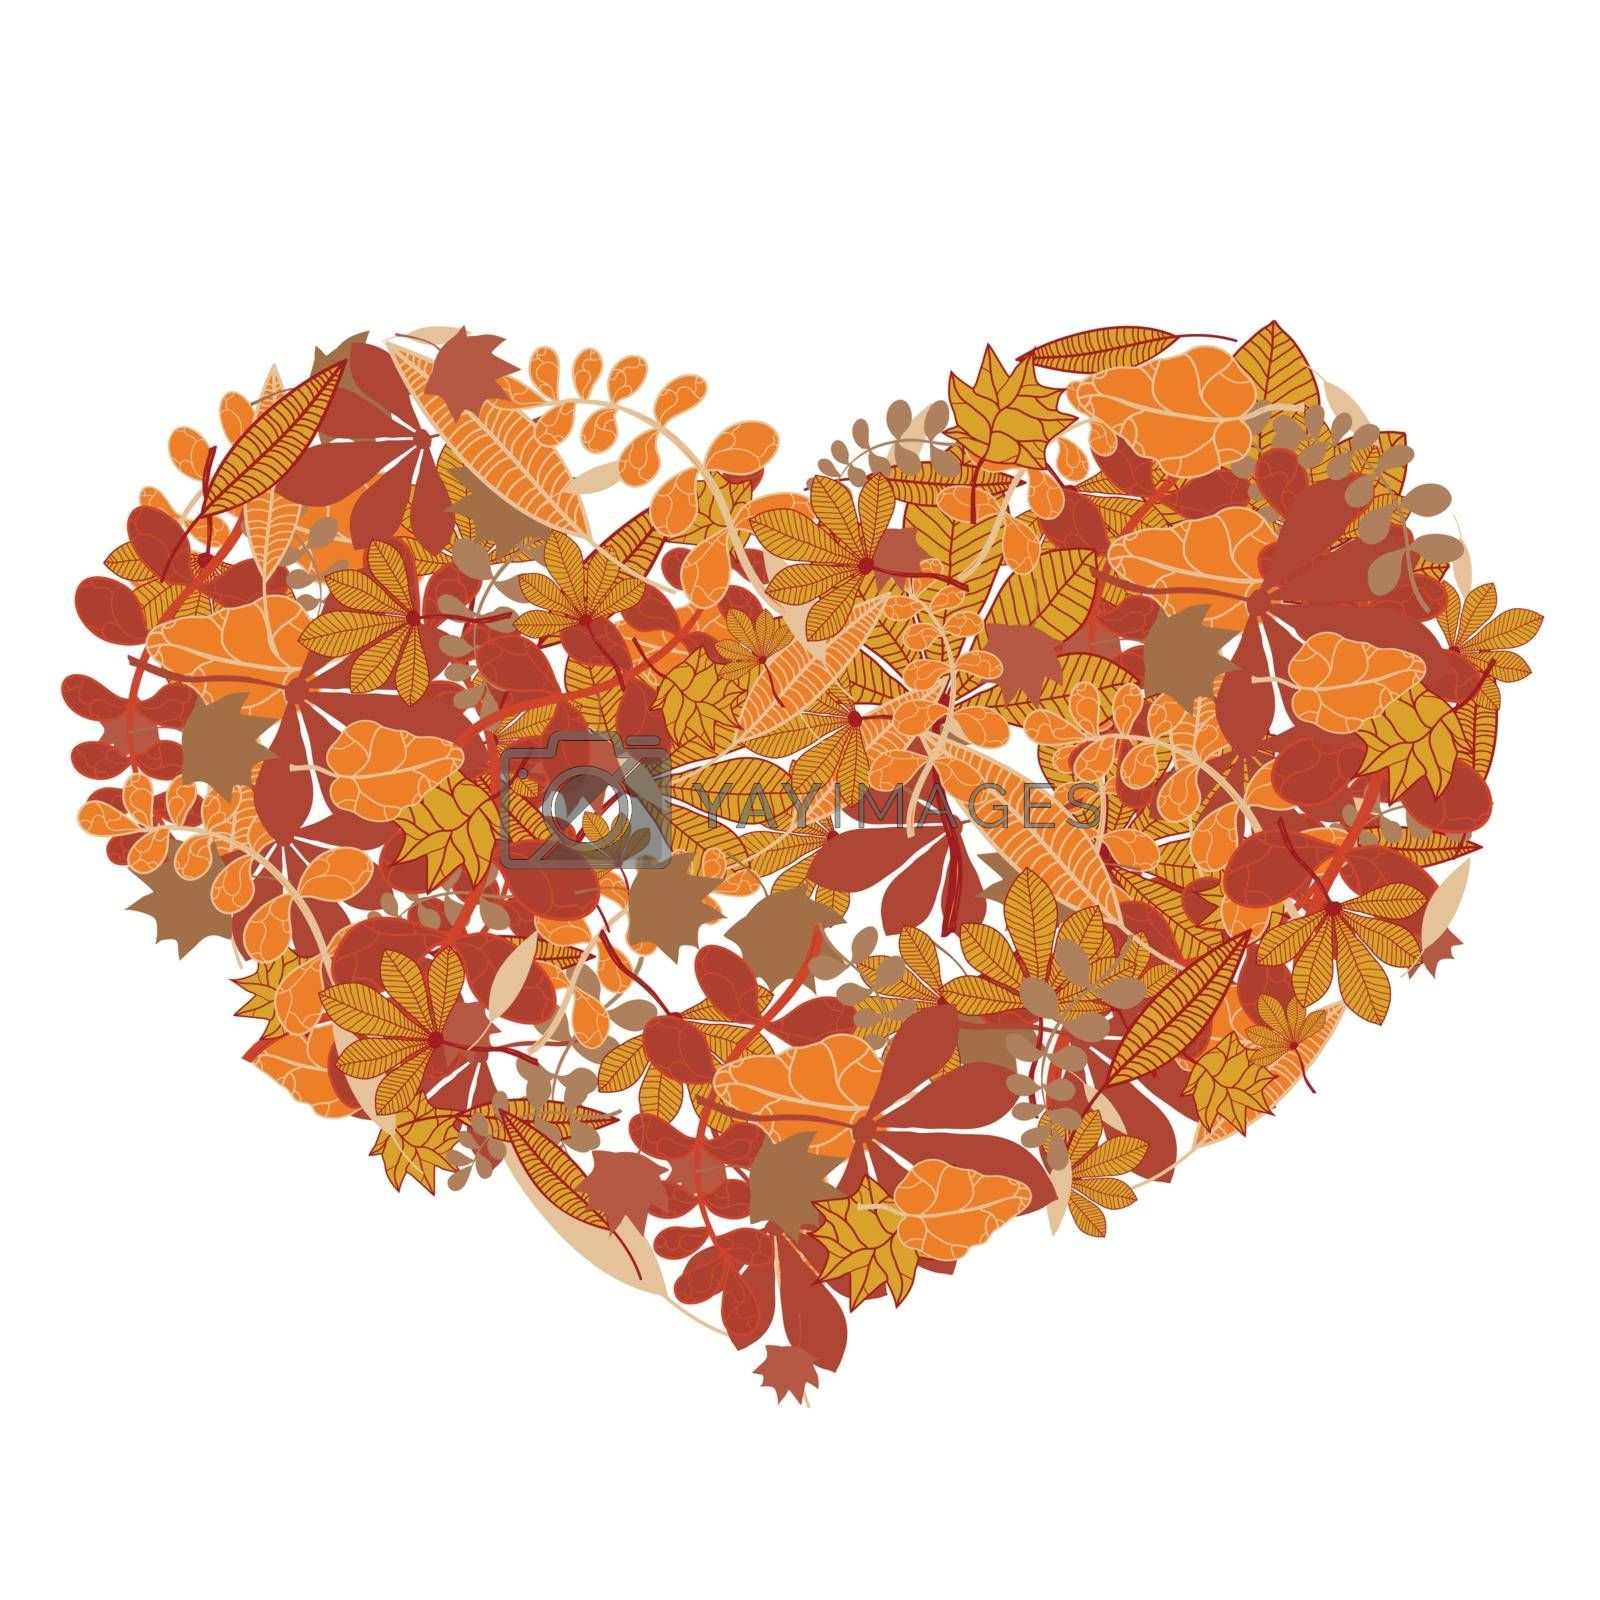 Heart shape made out of colourful autumn leaves